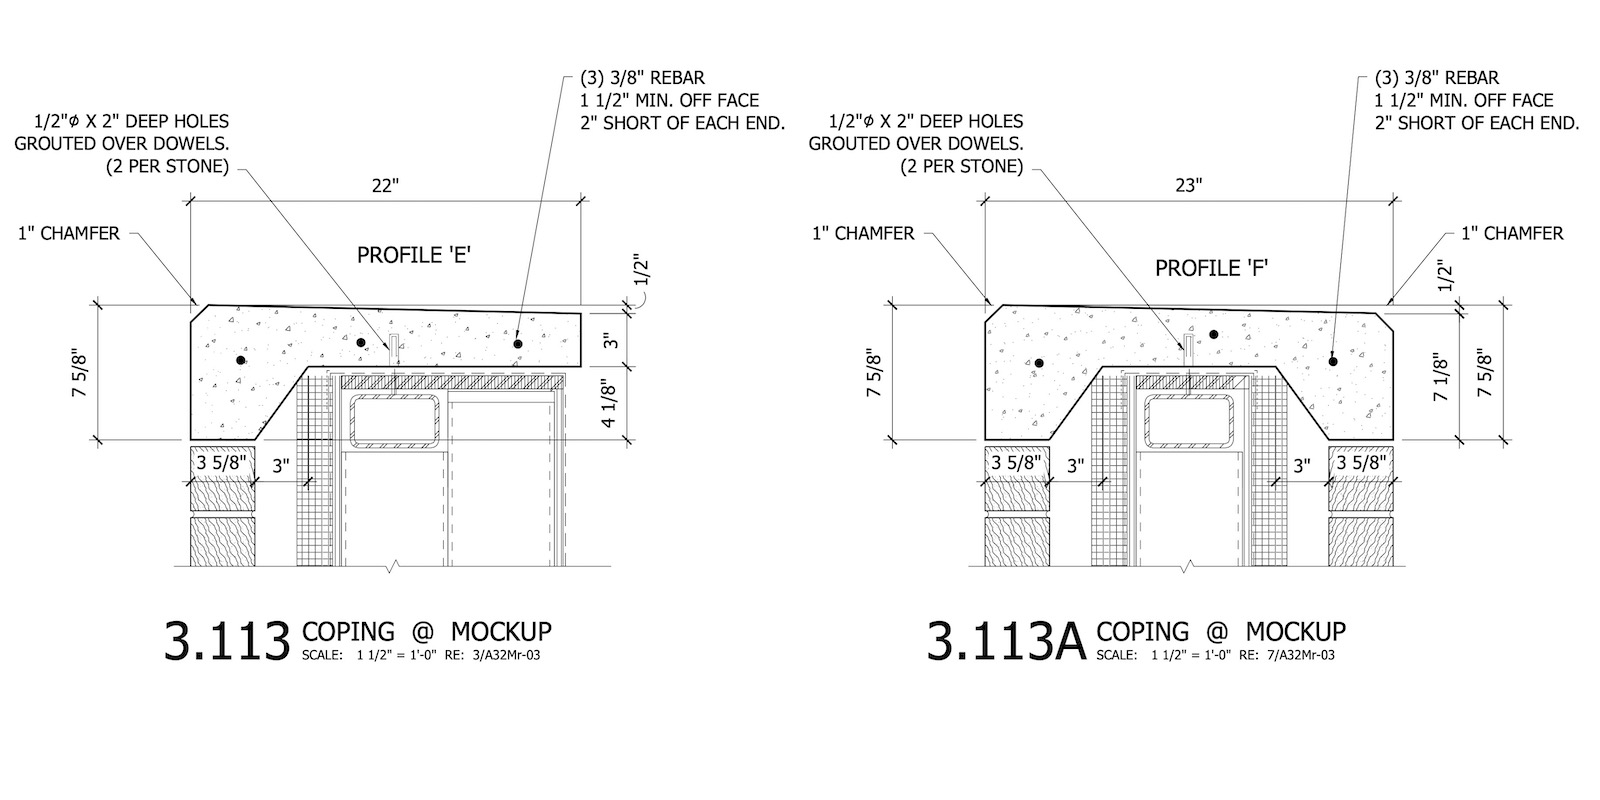 CAD Drawings Details for Different Coping Profiles